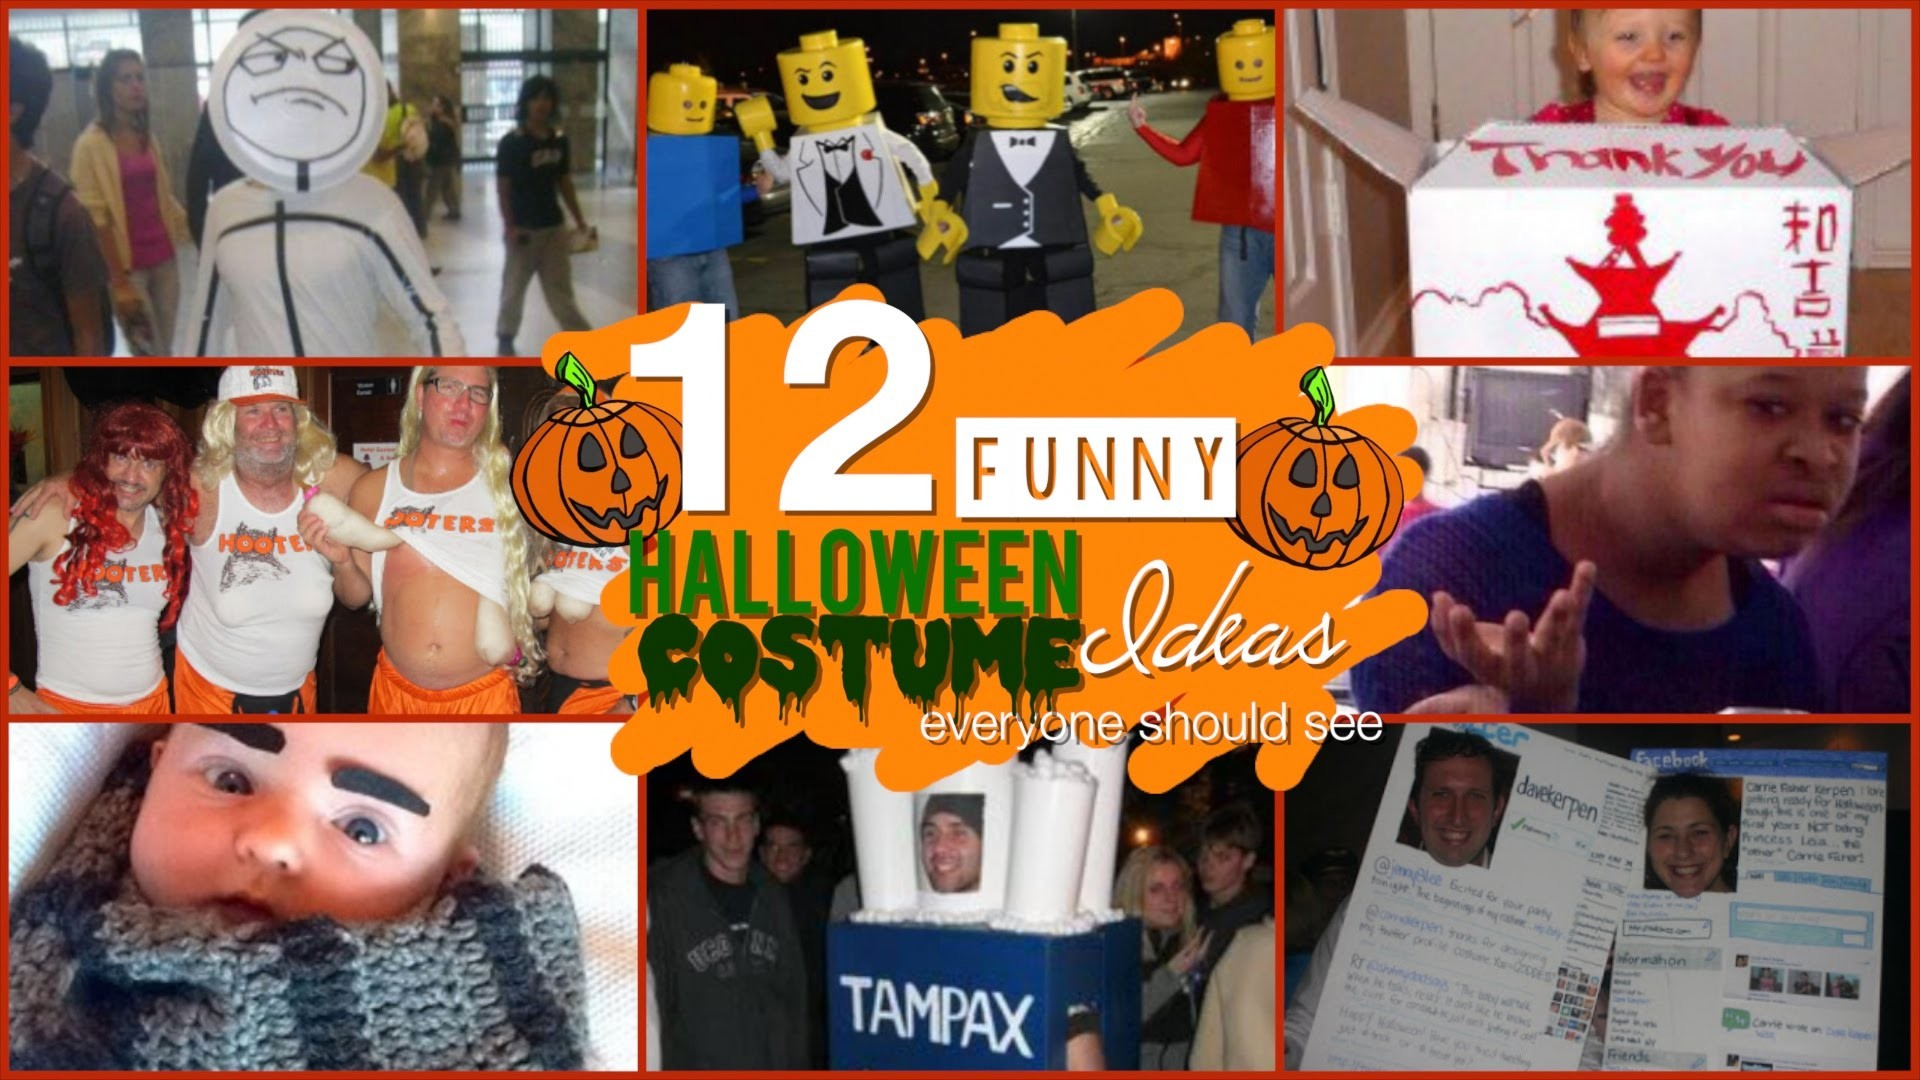 12 FUNNY HALLOWEEN COSTUME IDEAS Everyone Should See